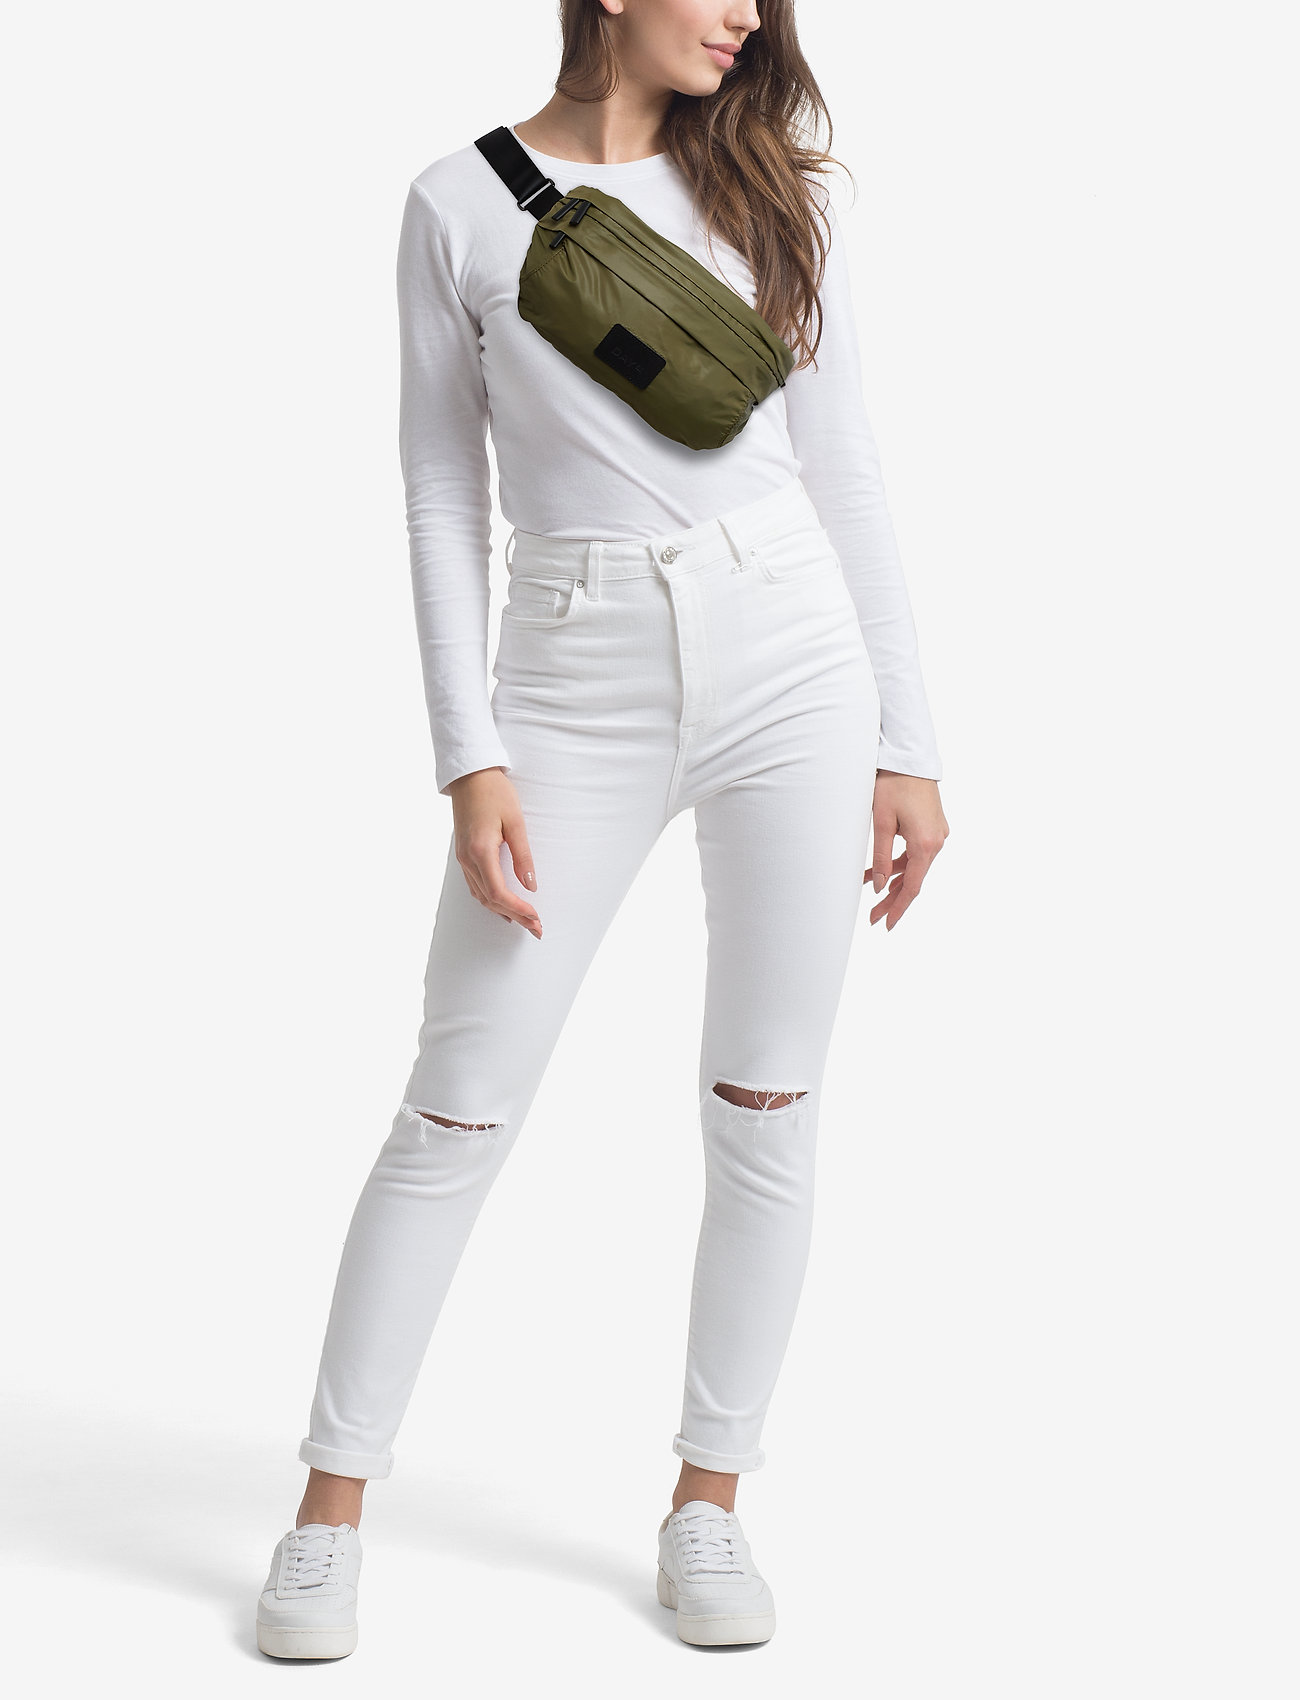 DAY et - Day Smash Bum B - belt bags - ivy green